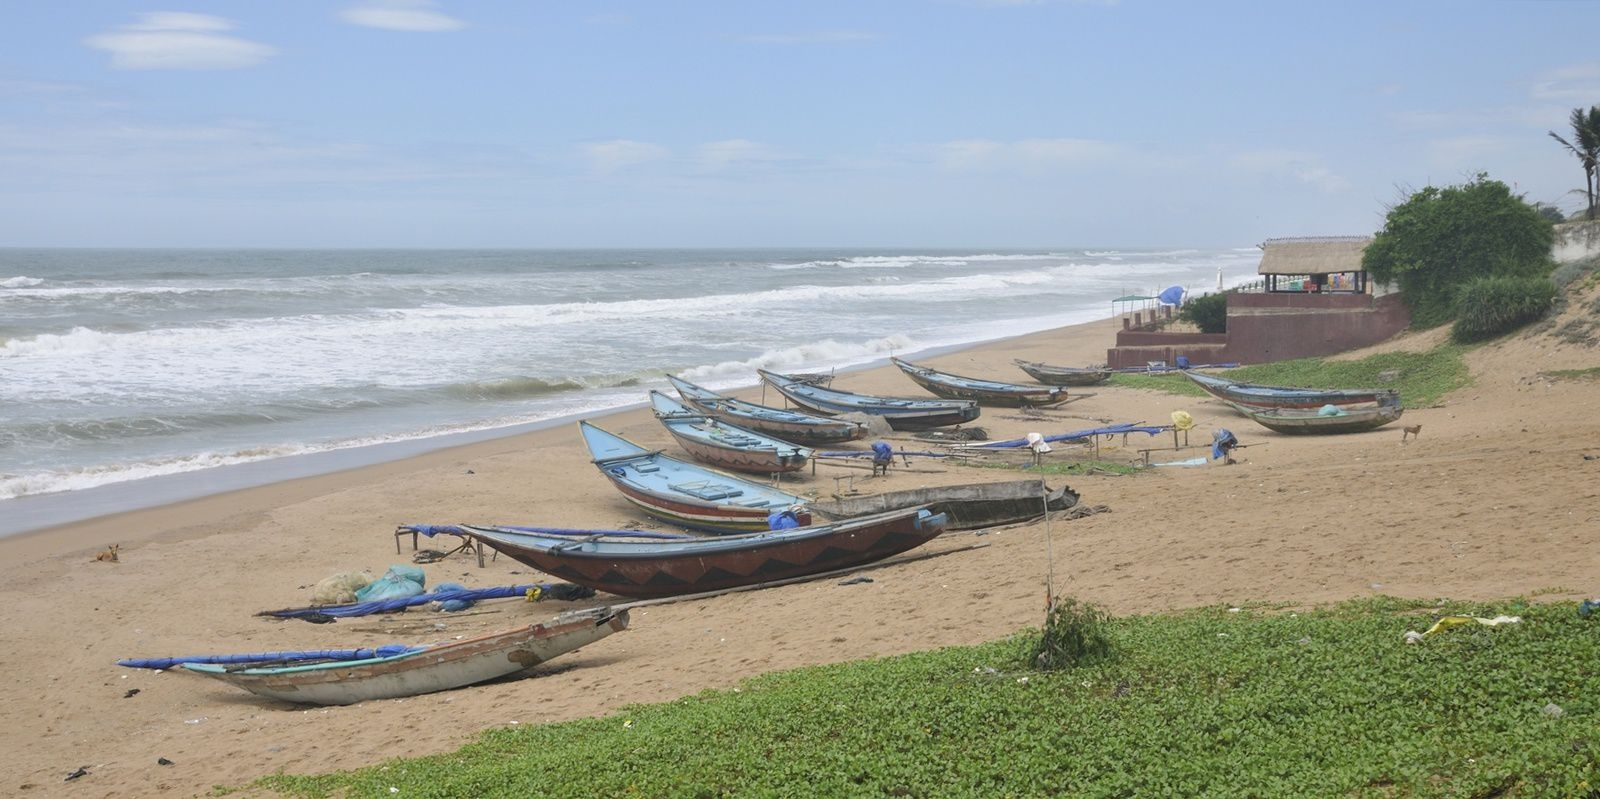 Gopalpur sea beach - India - juil 18